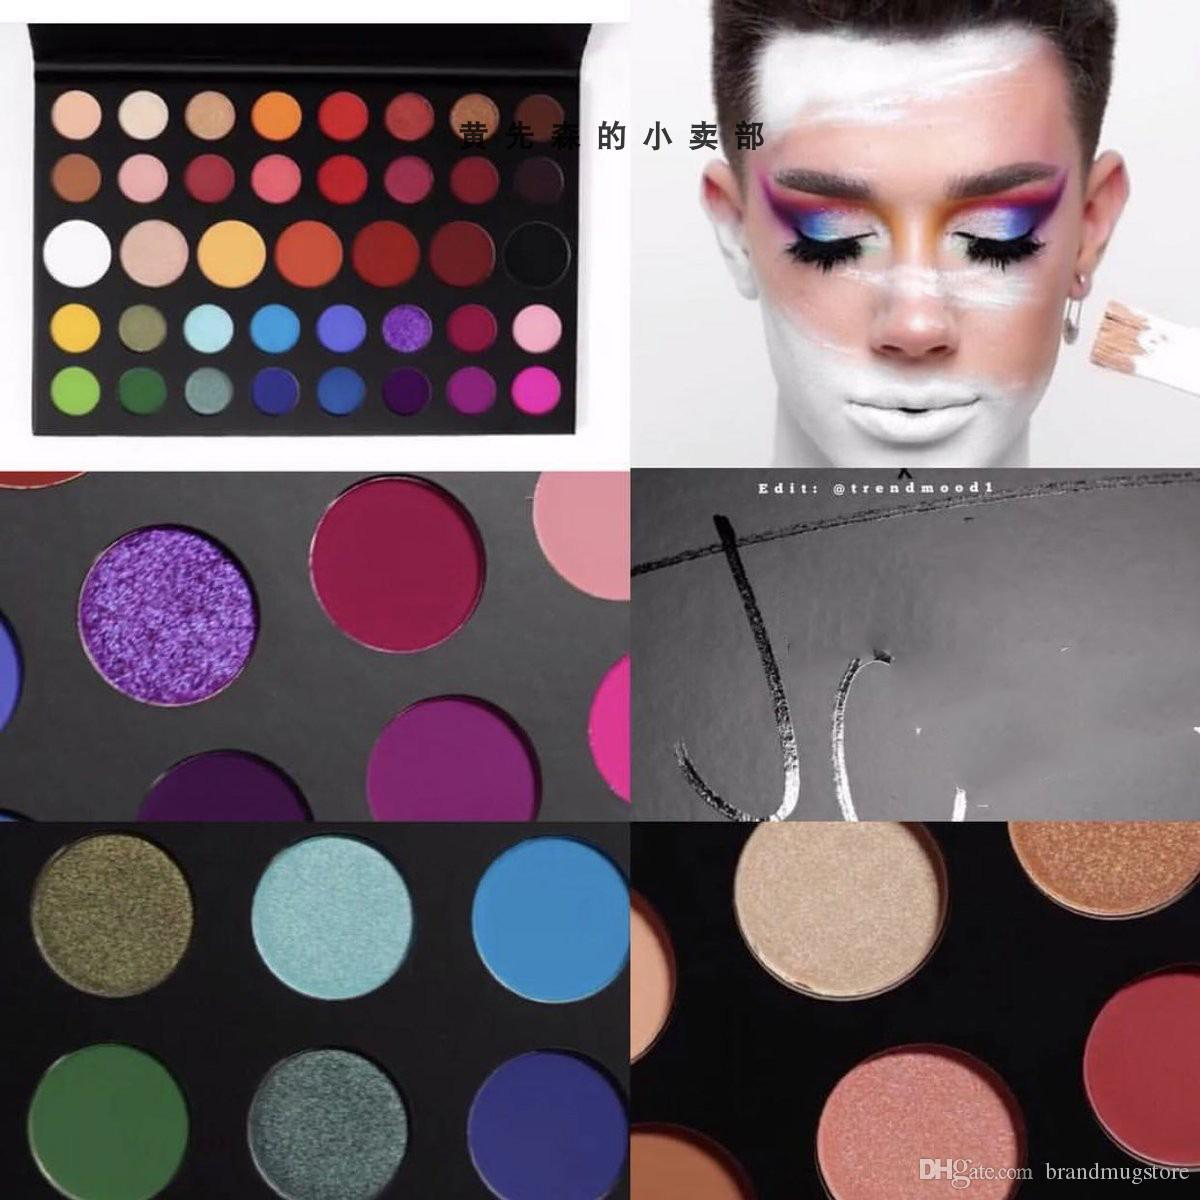 In Stock A Quality New Makeup James Charles Palette Eyeshadow